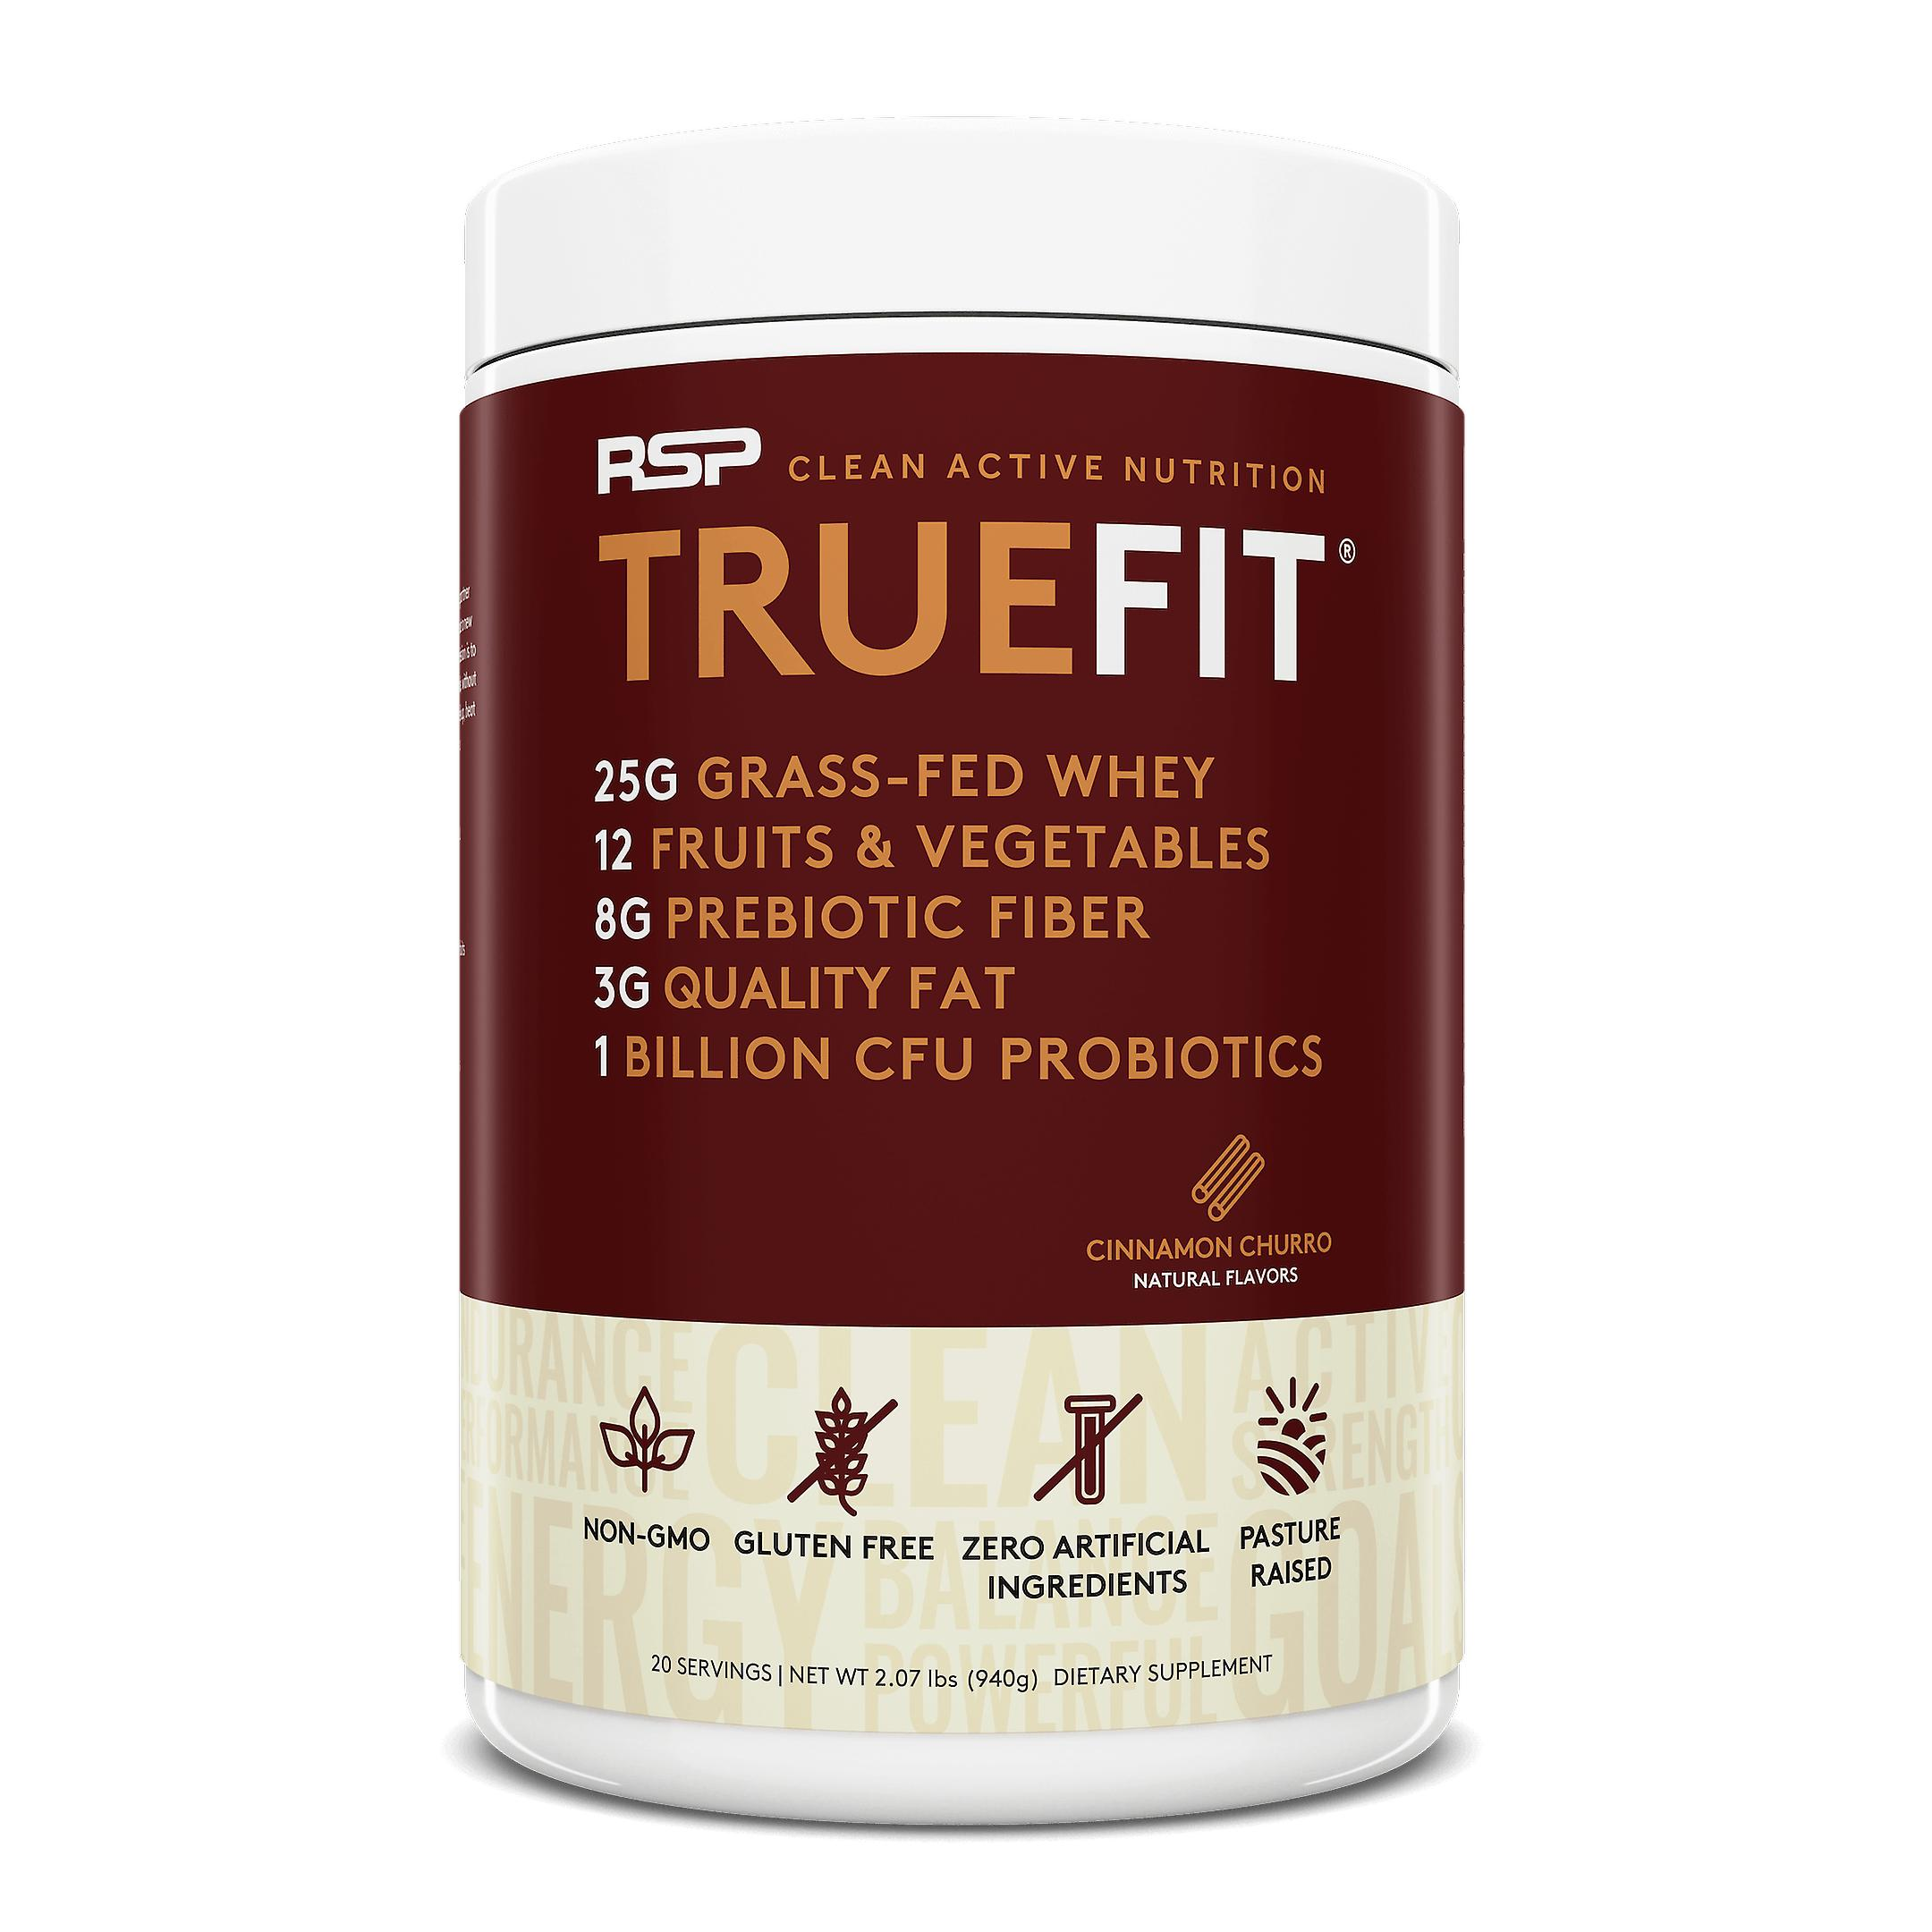 Rsp truefit protein powder, meal replacement shake, natural whey protein (cinnamon churro)